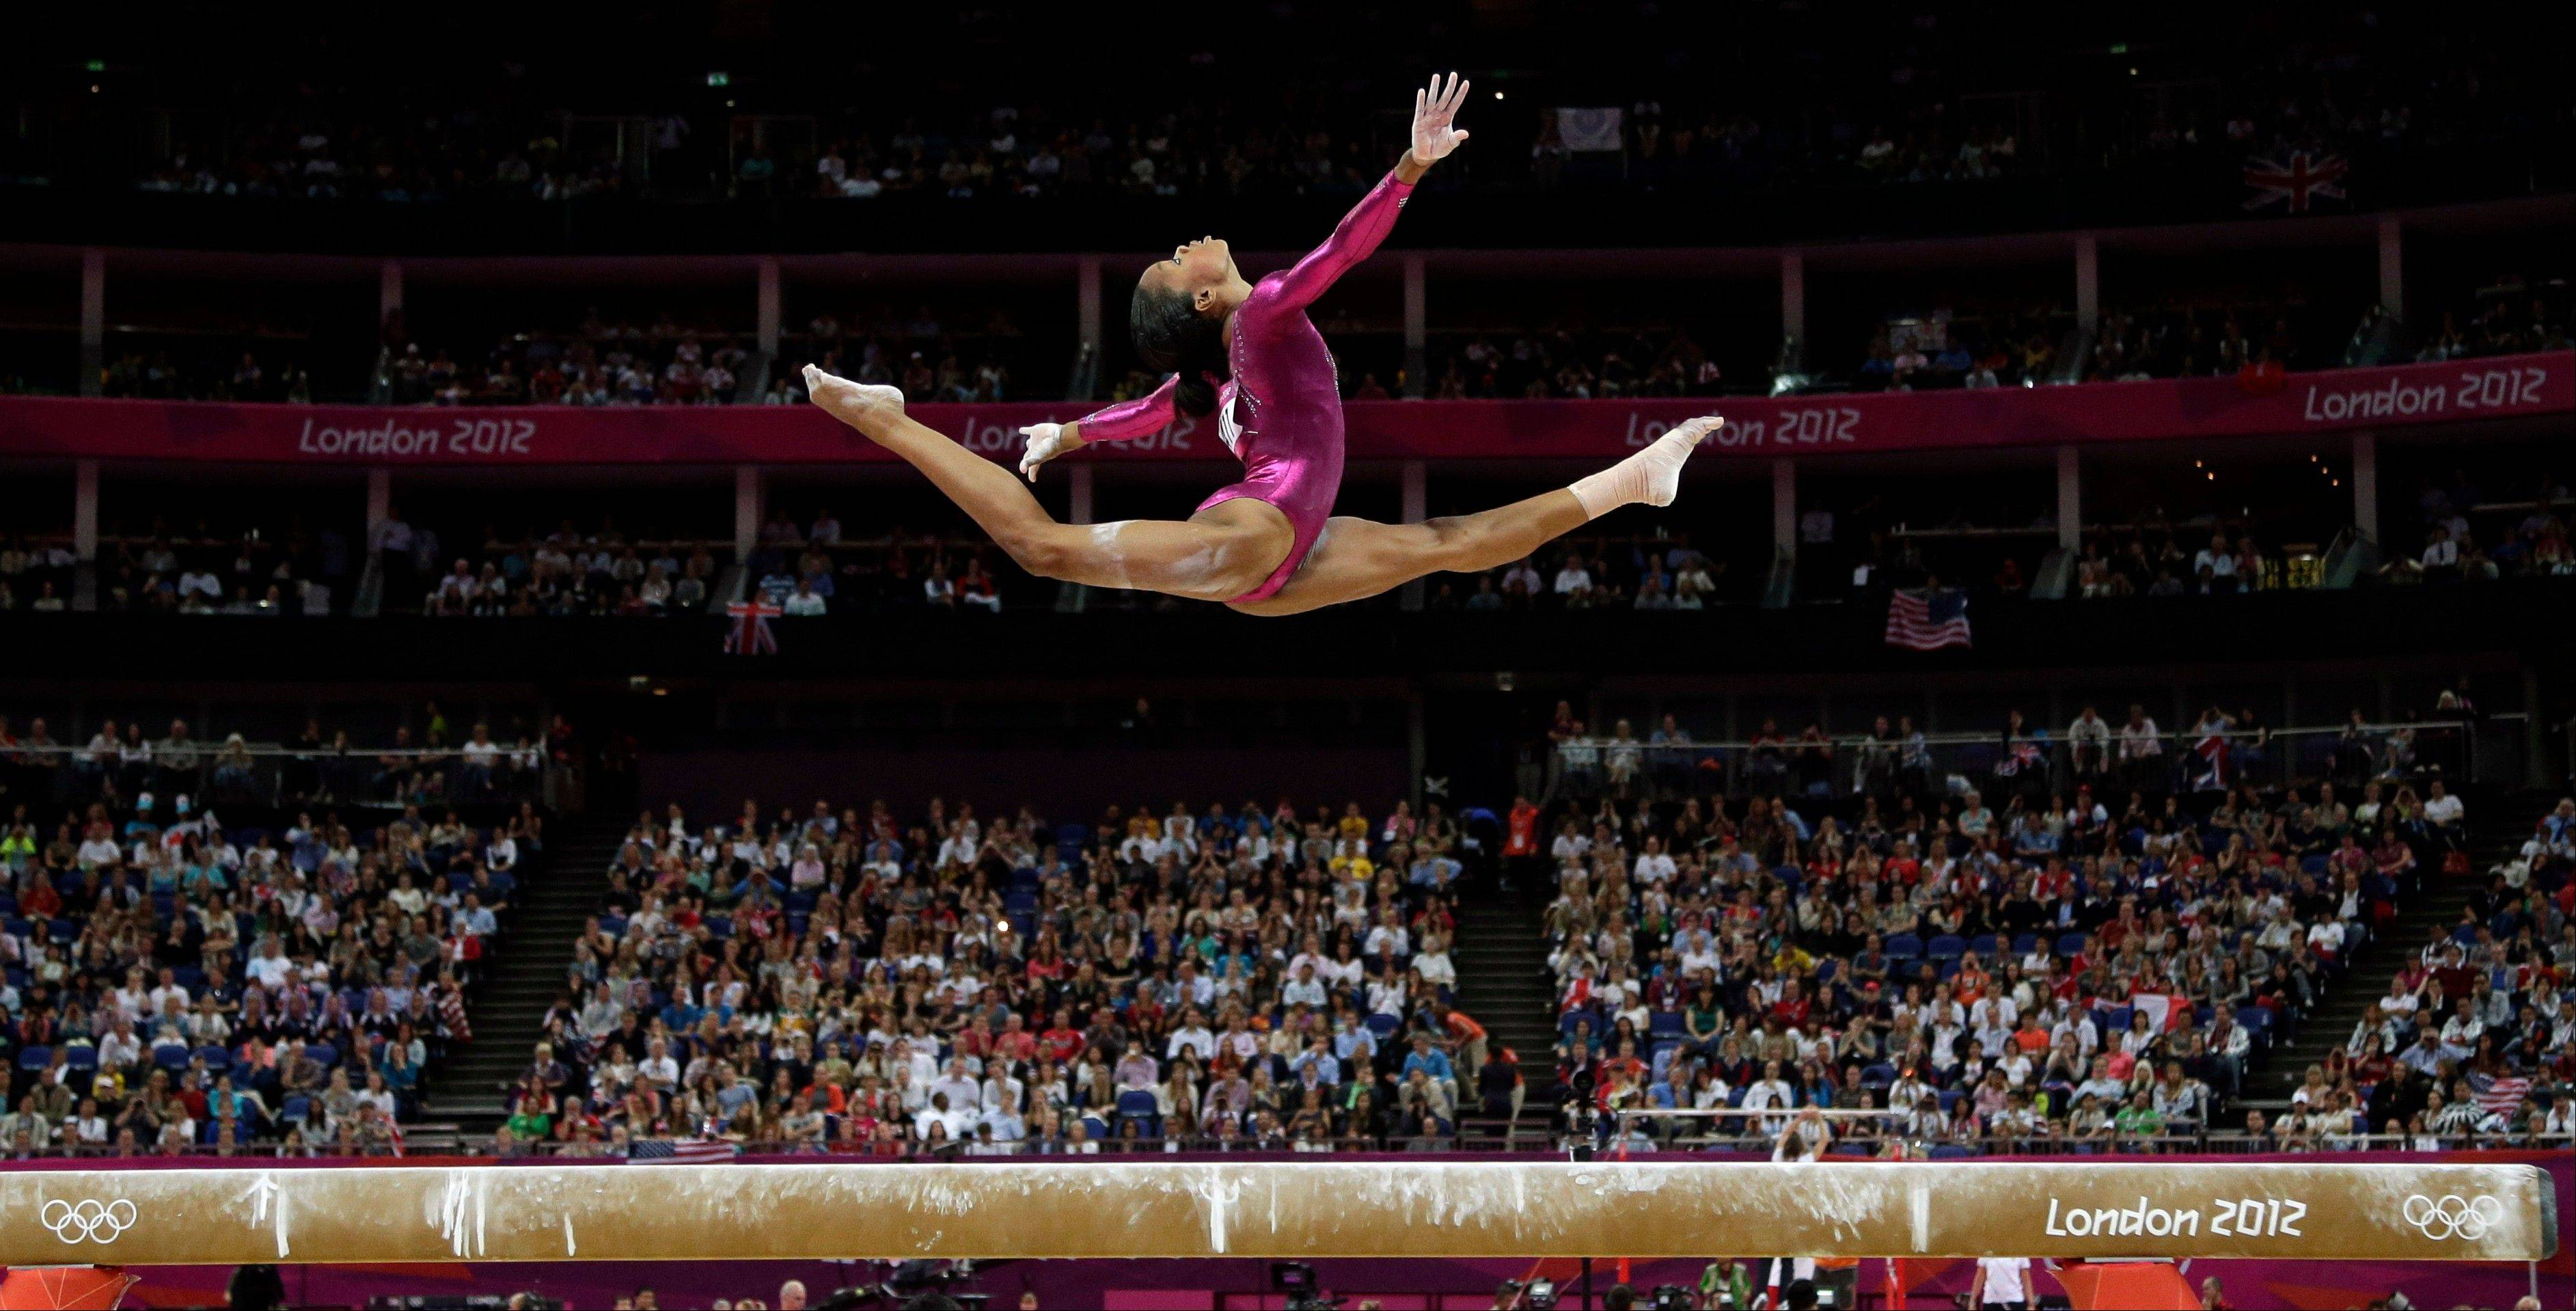 AP photographer Gregory Bull knew it would come — the moment when Gabby Douglas does that little bit extra. Her leap, high above the beam, in the women's all-around individual gymnastics competition on Thursday is one of the iconic shots of the London Games.